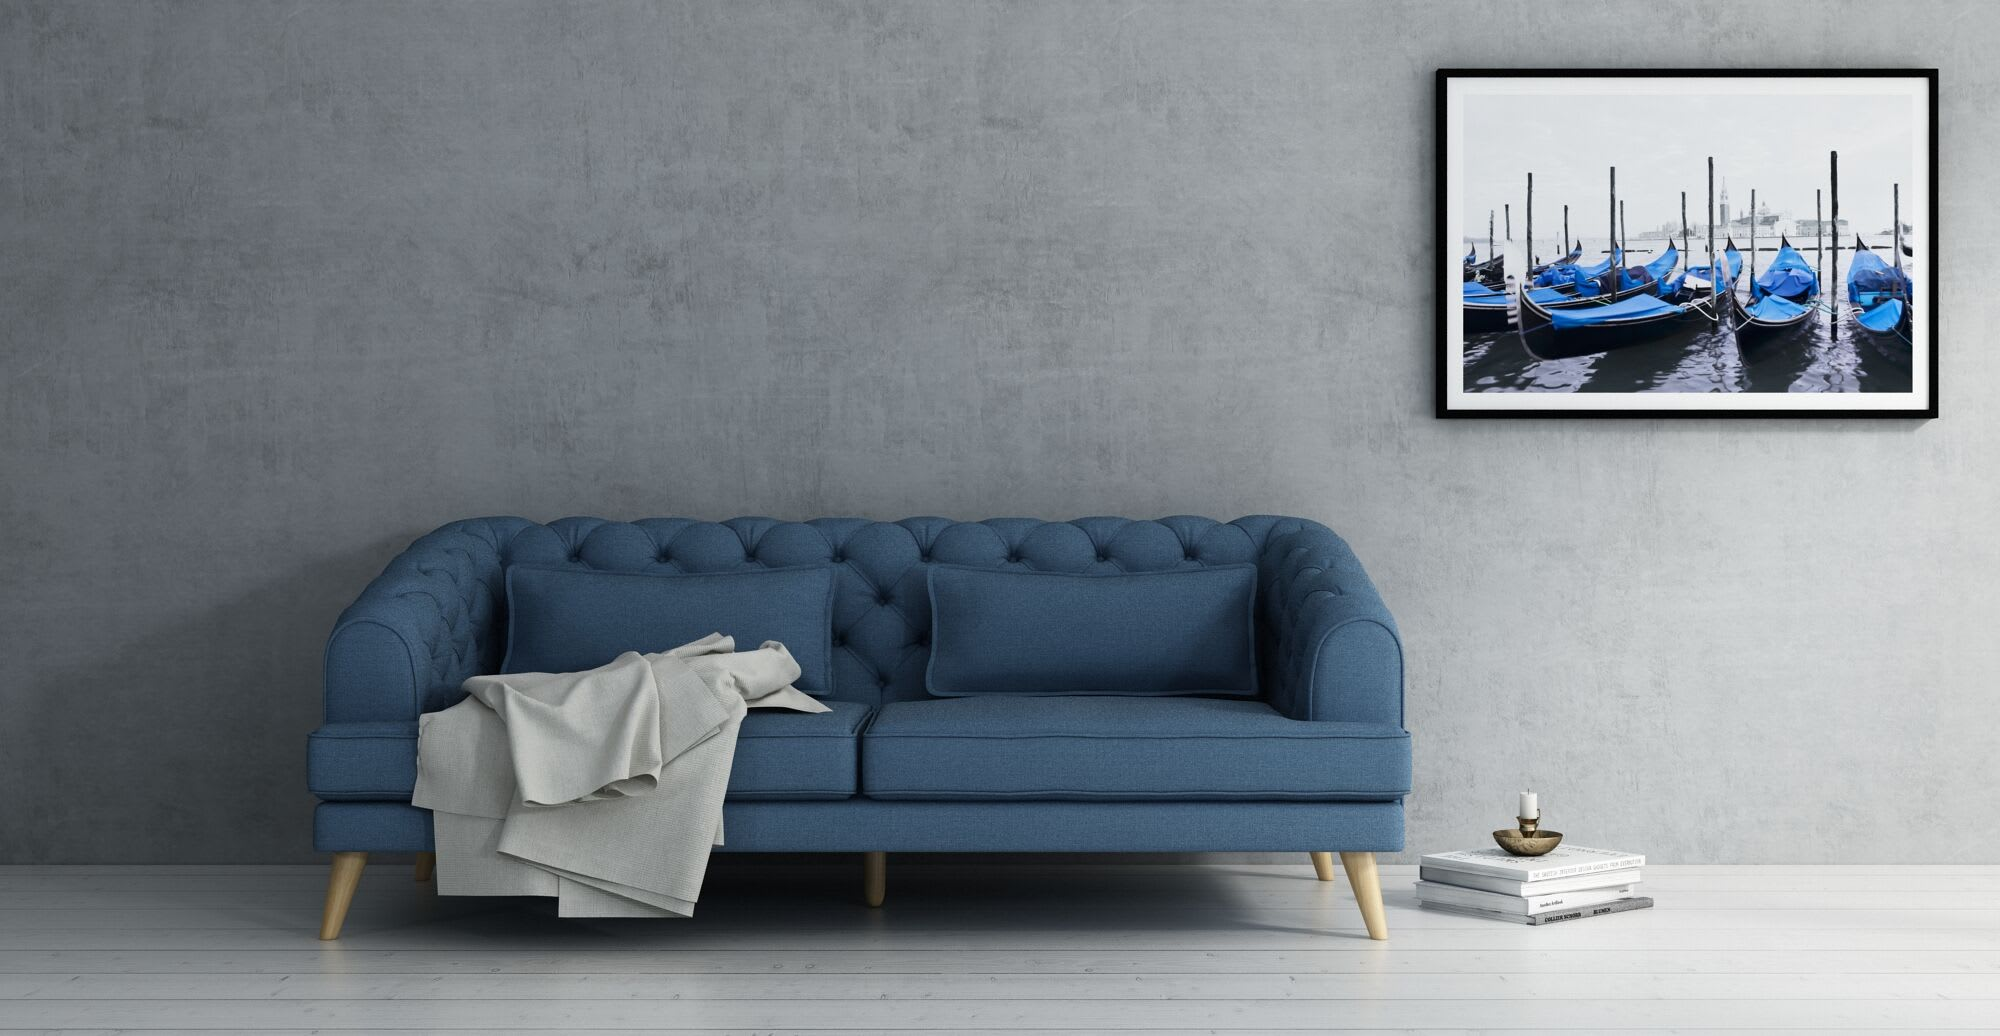 A navy sofa in a designed space